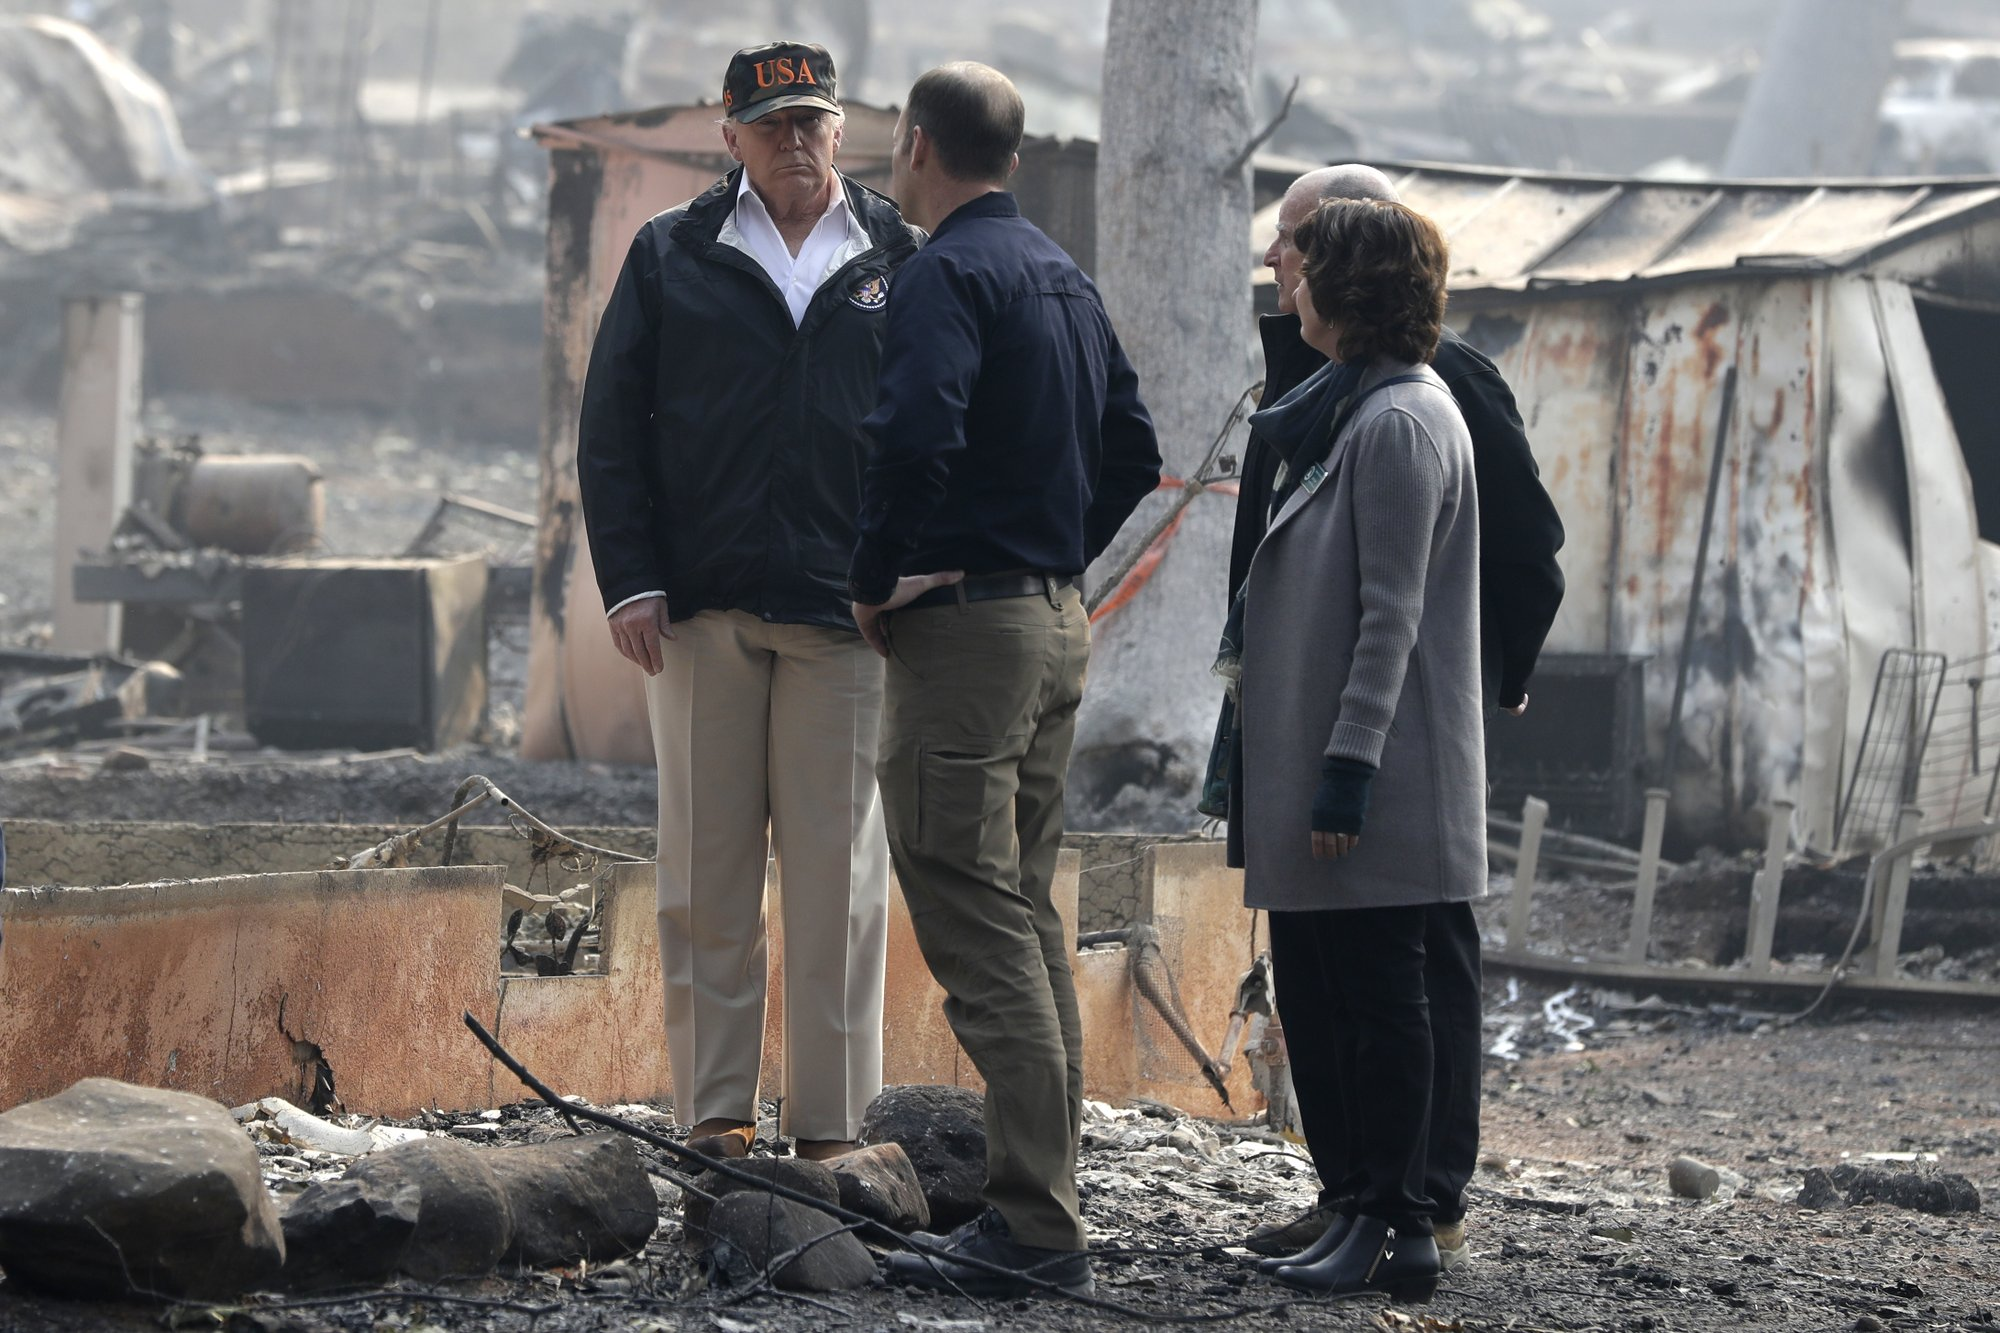 apnews.com - Sudhin Thanawala - Death toll rises to 76 in California fire with winds ahead